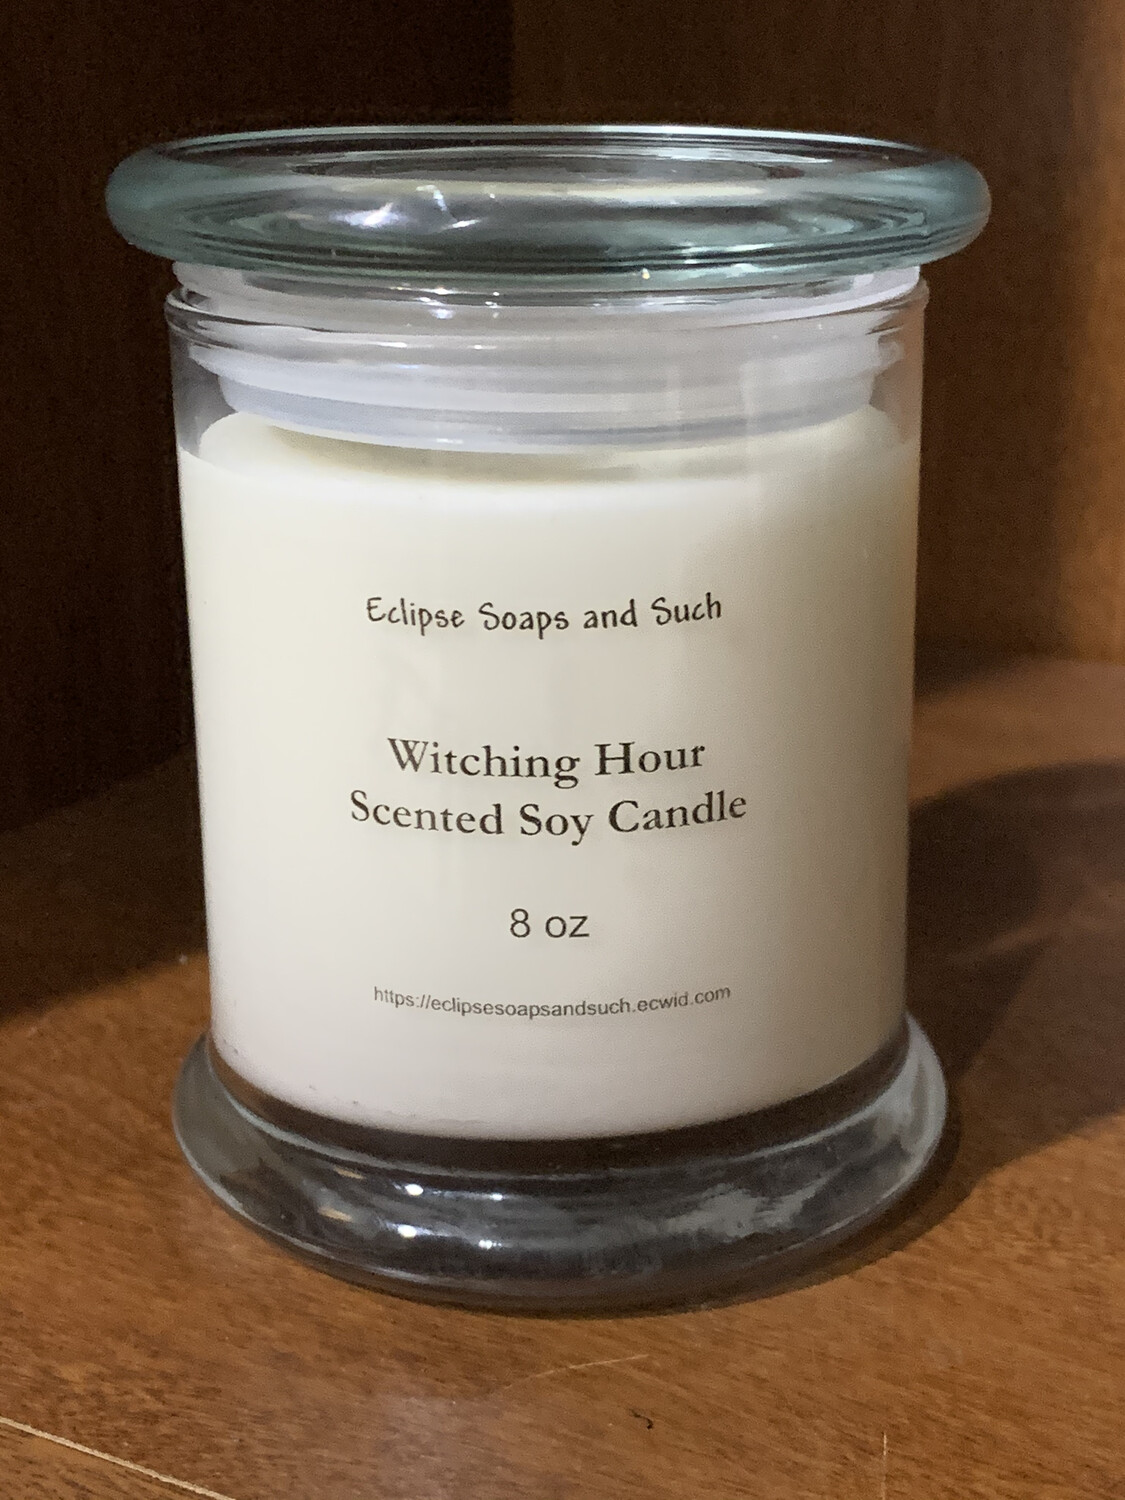 Witching Hour Scented Soy Candle 8oz